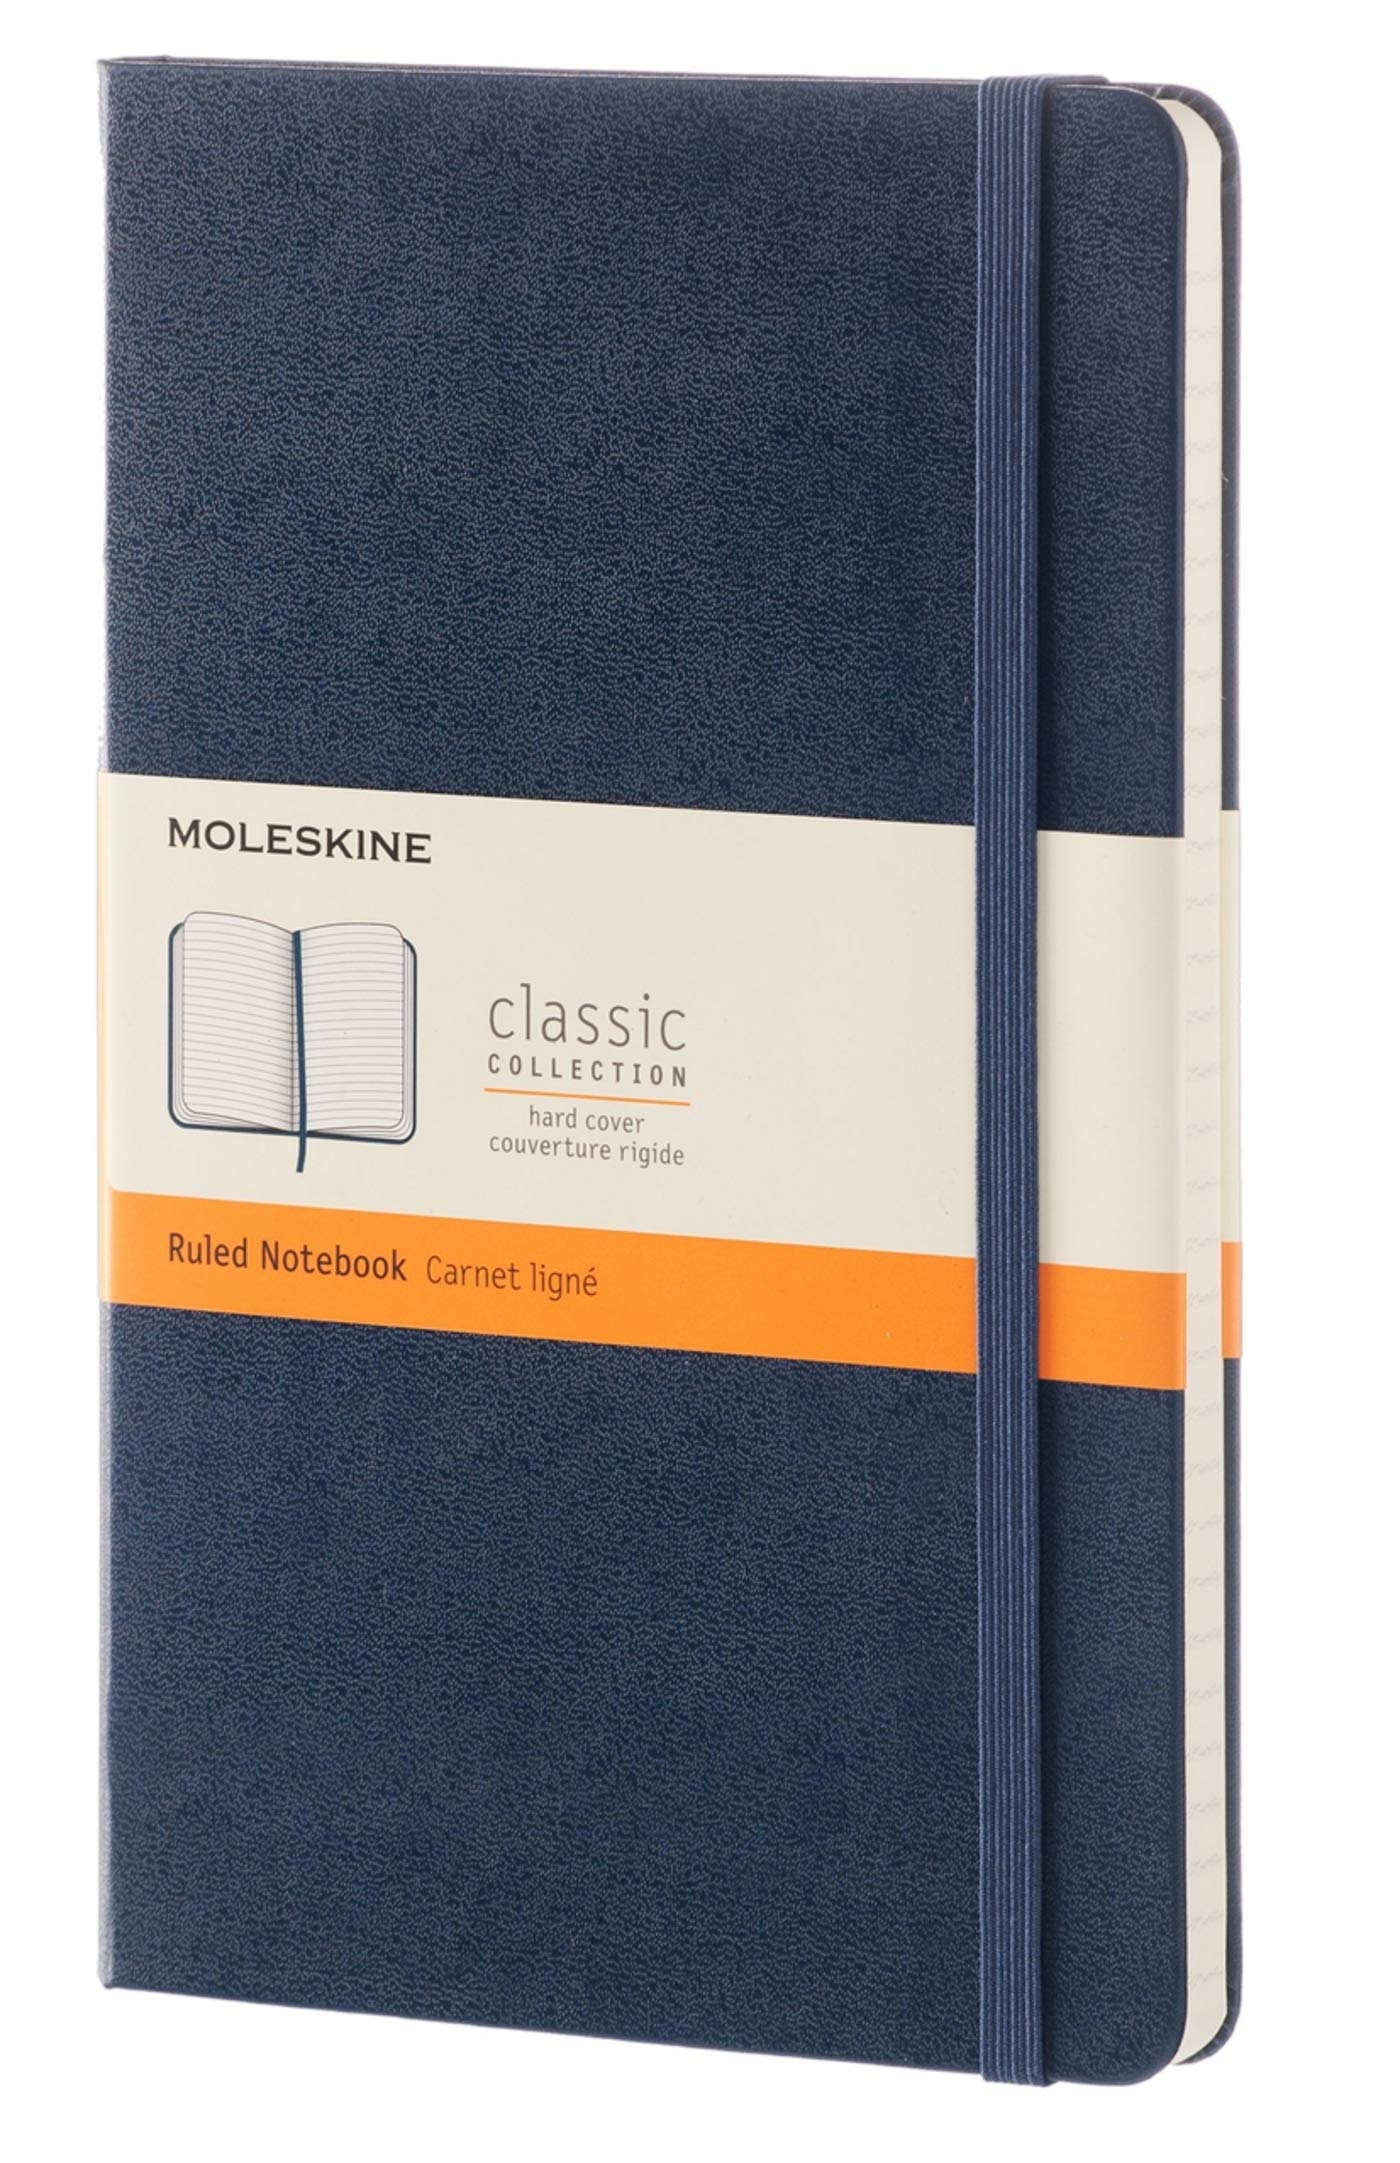 Moleskine Classic Notebook, Hard Cover, Large (5'' x 8.25'') Ruled/Lined, Sapphire Blue